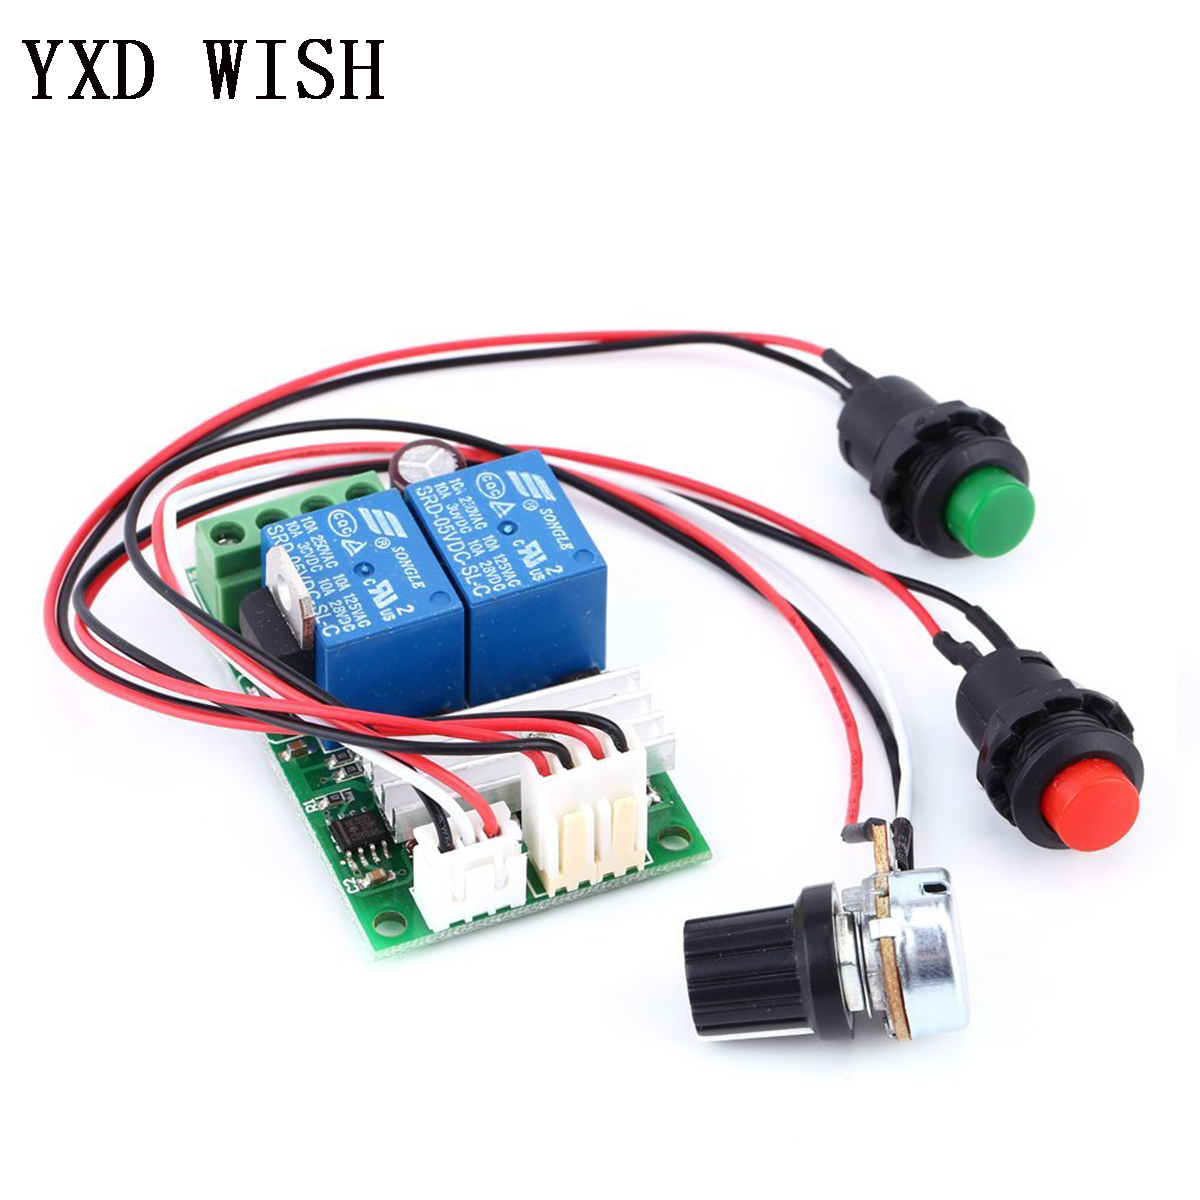 PWM DC Motor Speed Regulator Controller Board Adjustable Speed Control Reversible PWM Relay Module DC 6V-28V 12V 24V 3A 21kHz